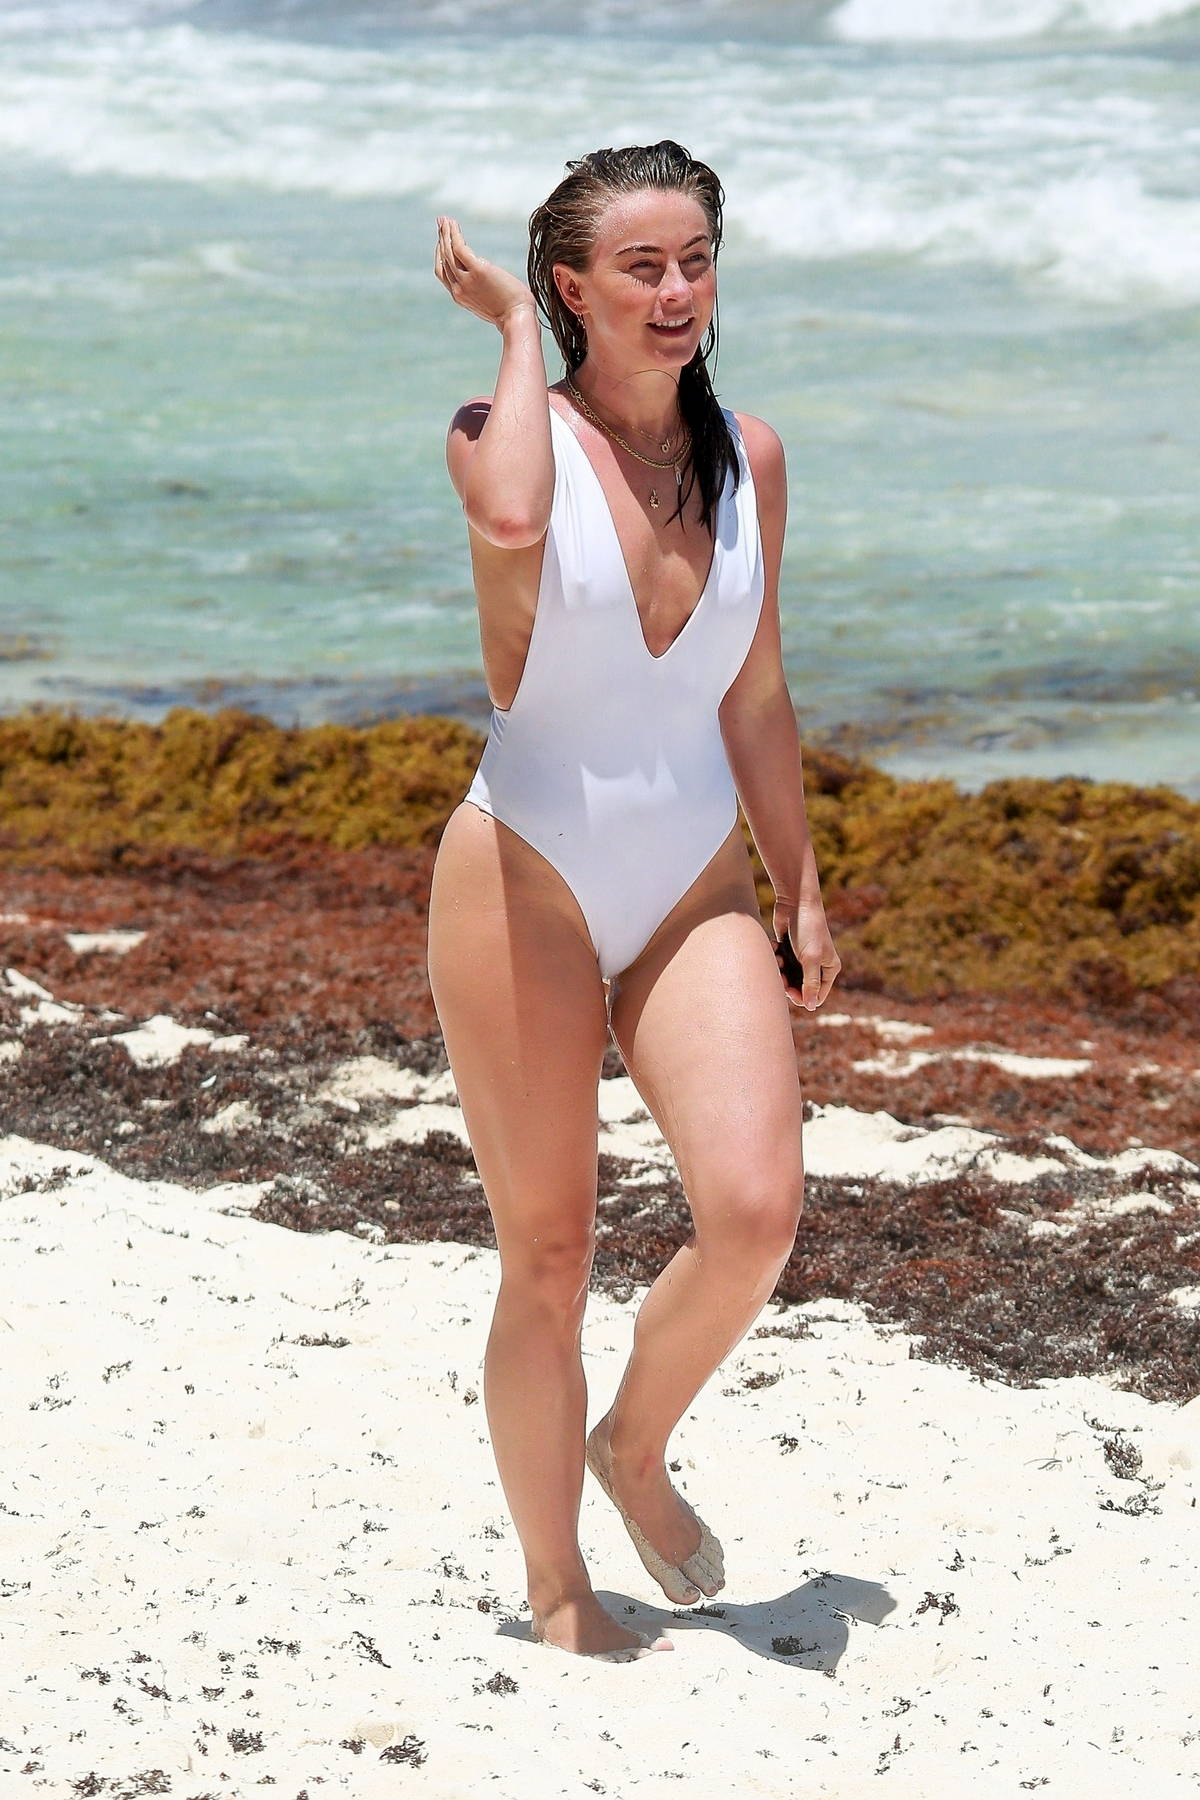 Julianne Hough heats up the beach in a white swimsuit as she continues her vacation in Tulum, Mexico